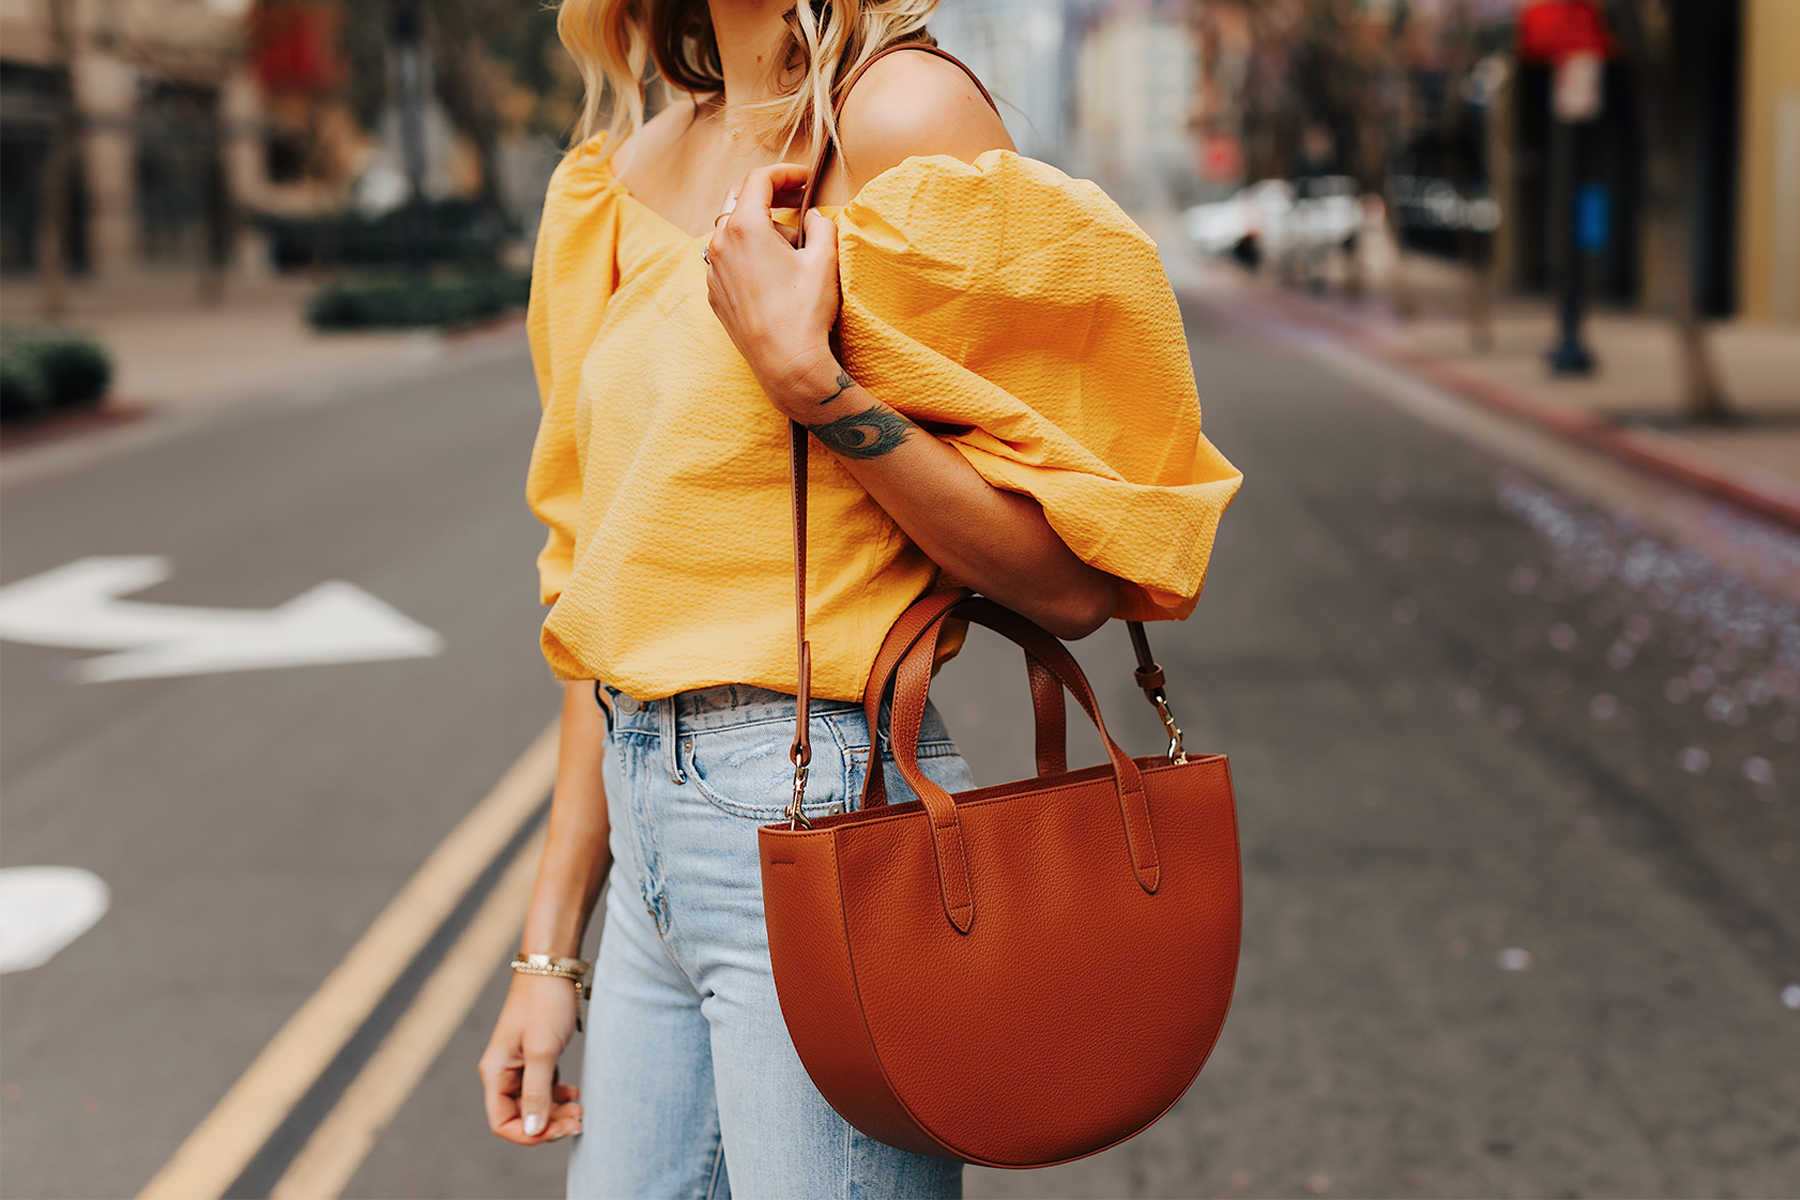 Fashion Jackson Wearing Cuyana Yellow Off the Shoulder Blouse Light Wash Jeans Cuyana Tan Semi Circle Handbag